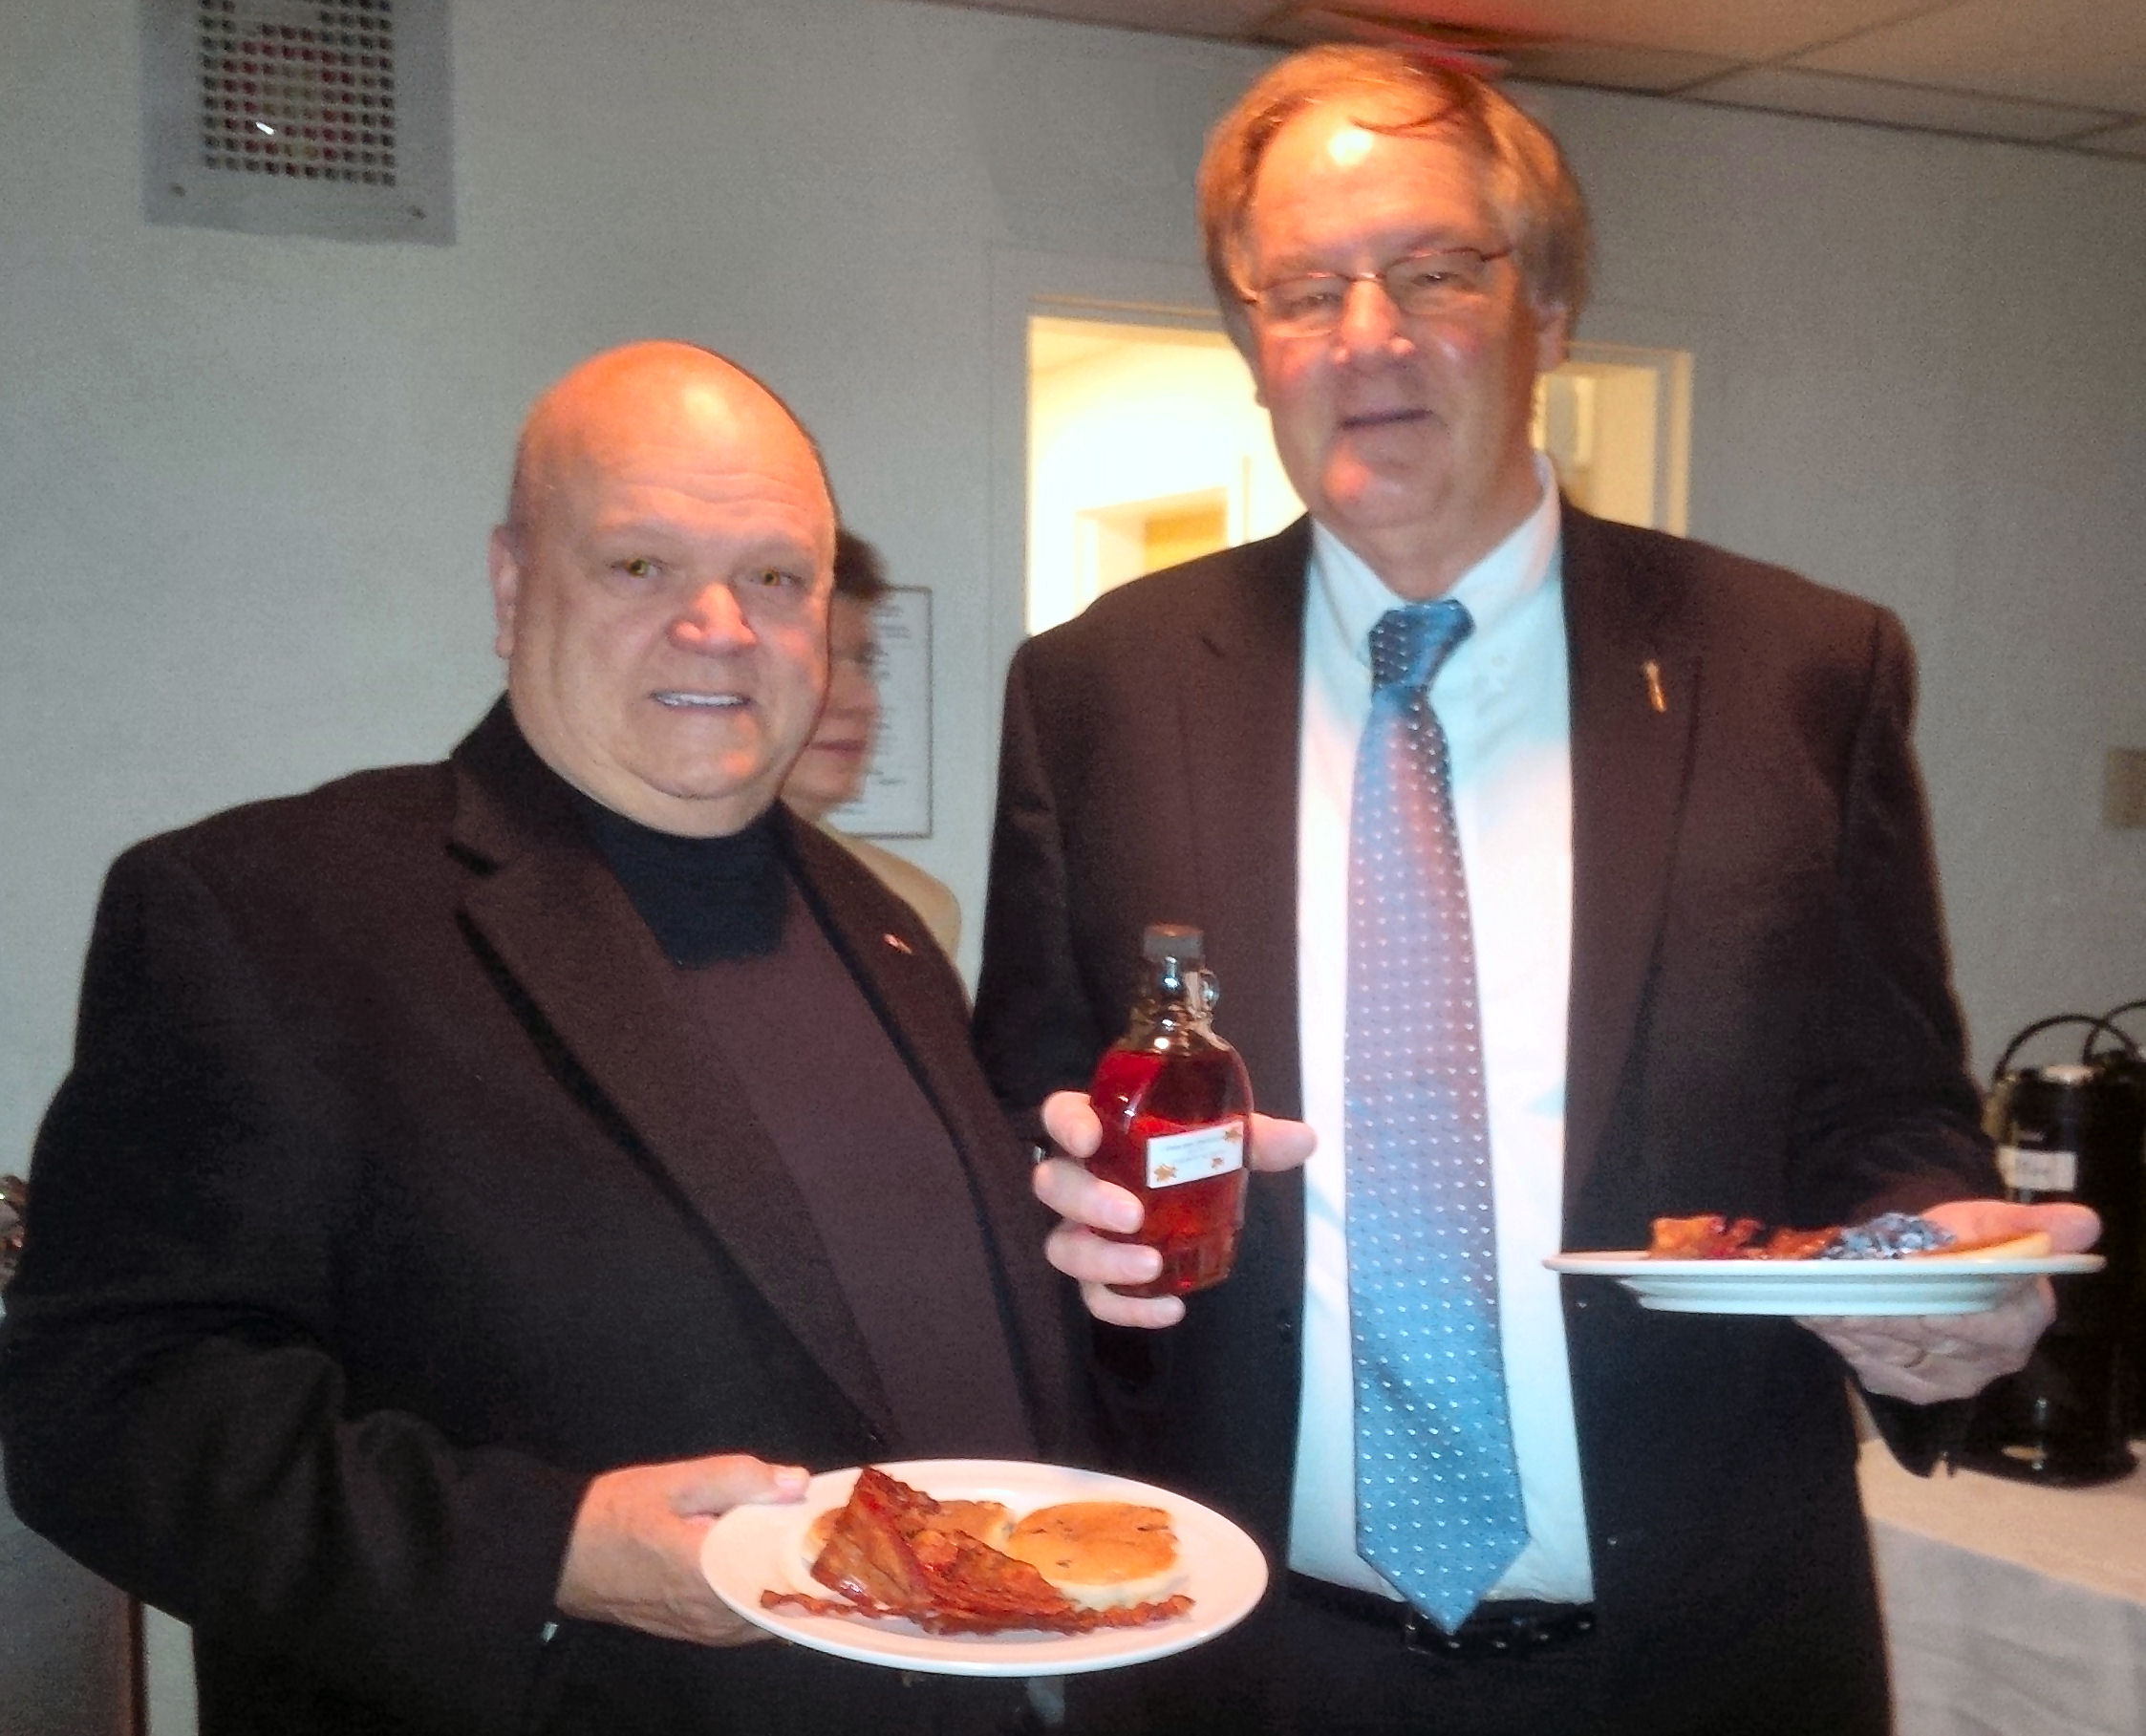 Wild blueberries, maple syrup served at breakfast for MLAs